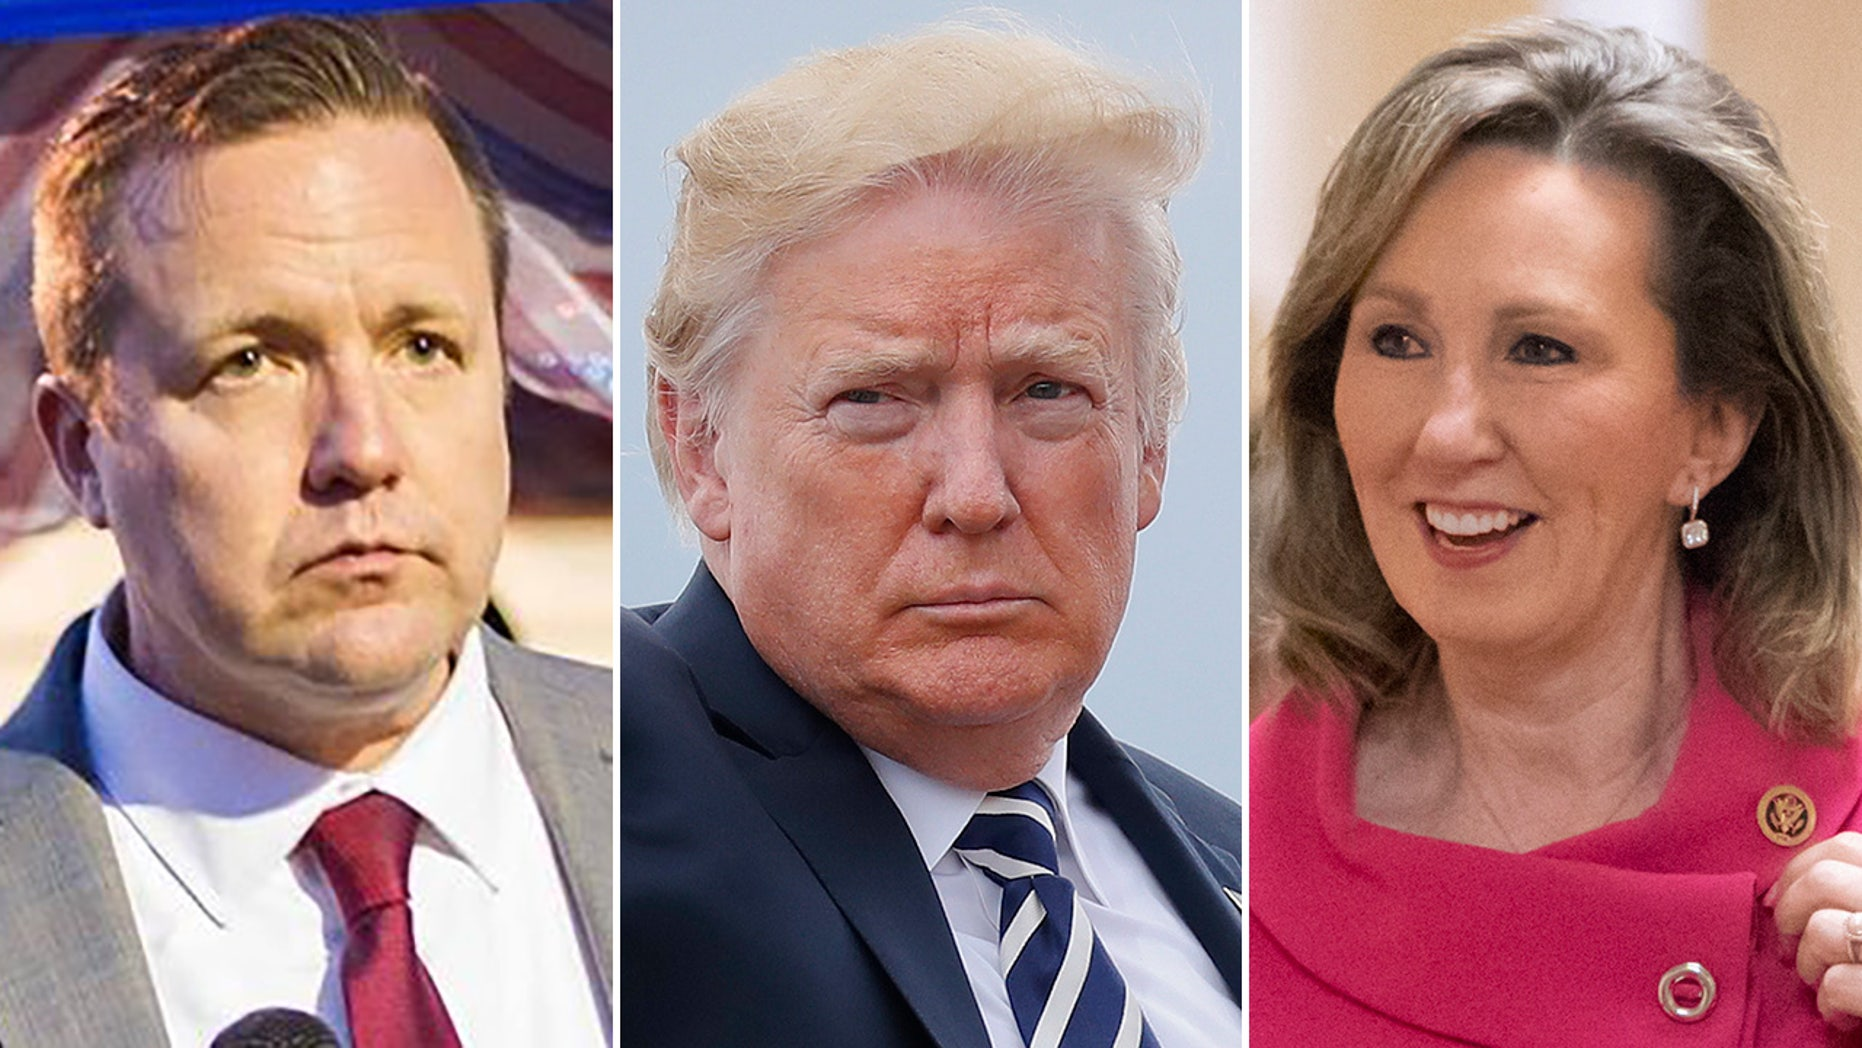 President Trump's proposal to halt pay raises for federal workers drew pushback from Virginia Republicans Corey Stewart, left, a U.S. Senate candidate, and U.S. Rep. Barbara Comstock, who is up for reelection.